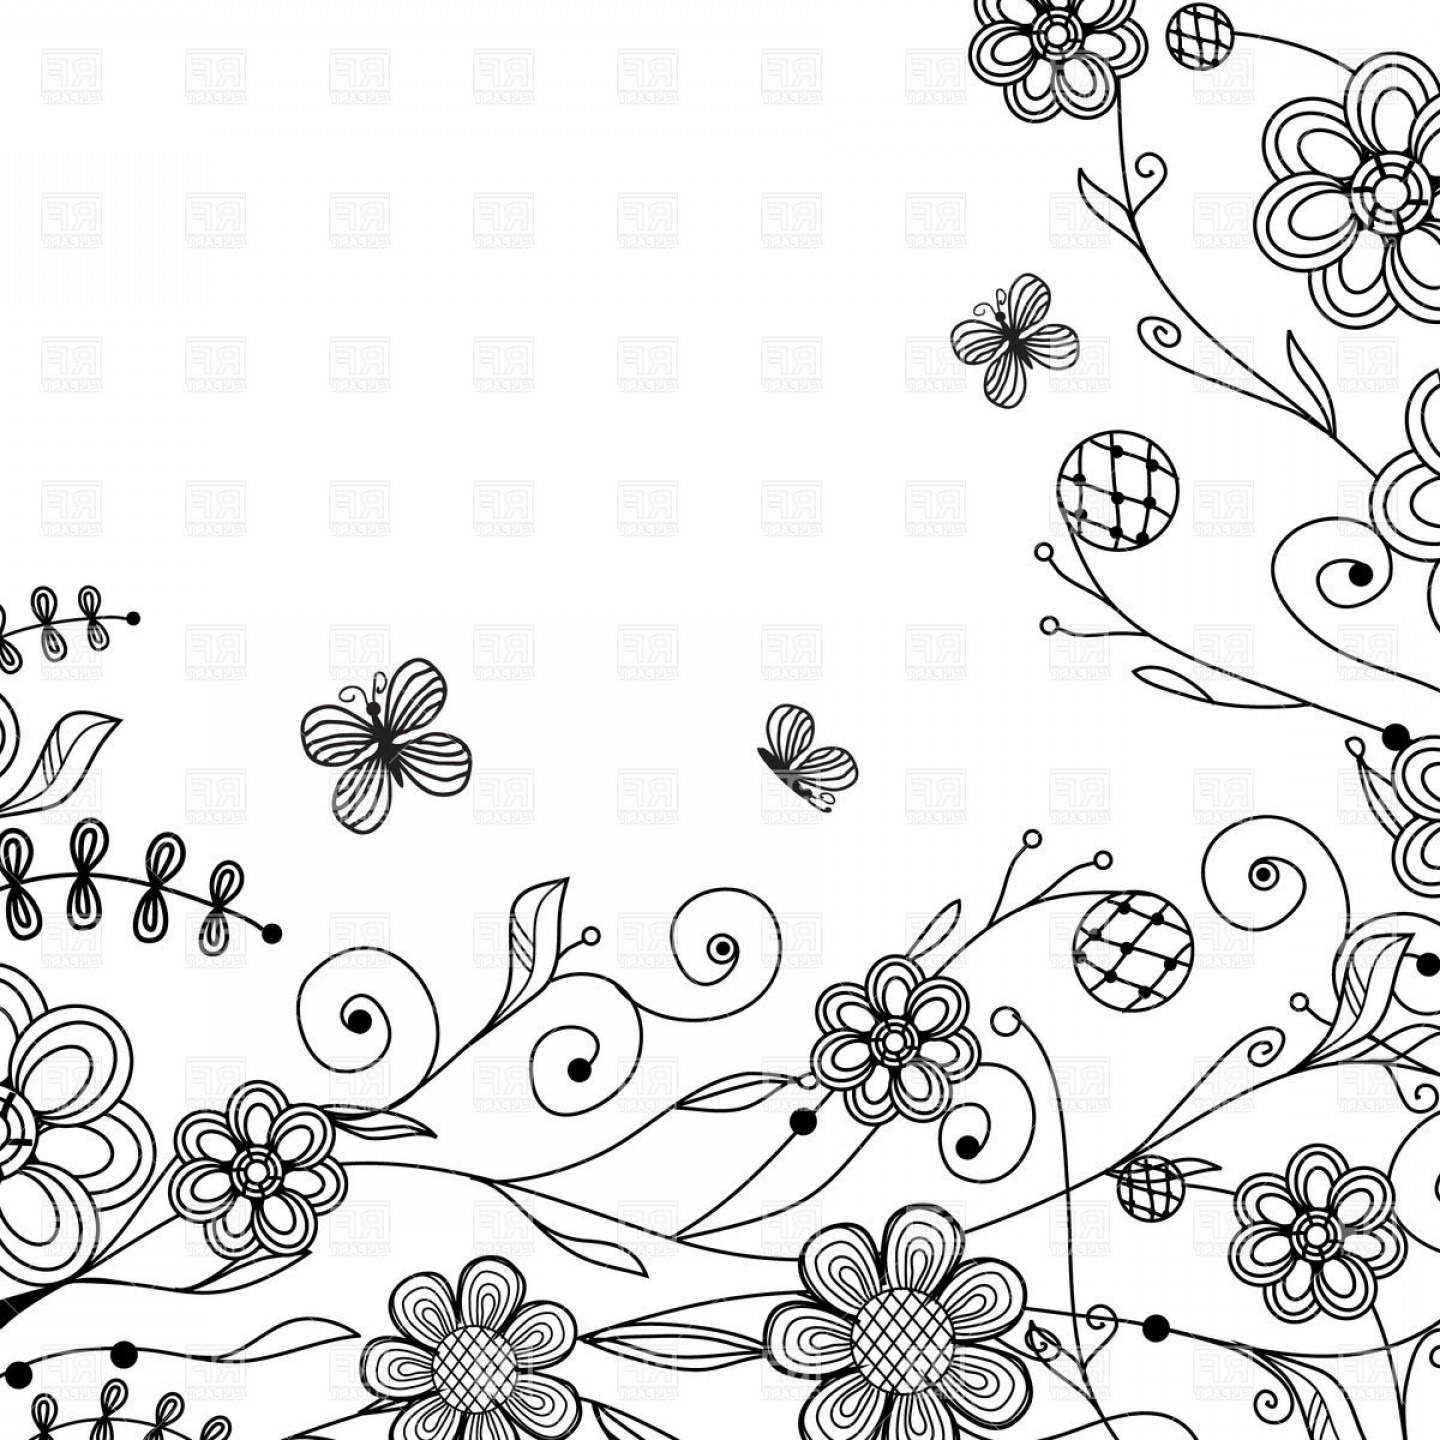 Butter Fly And Flower Vector Black And White: Black Sketch Flowers And Butterflies Vector Clipart